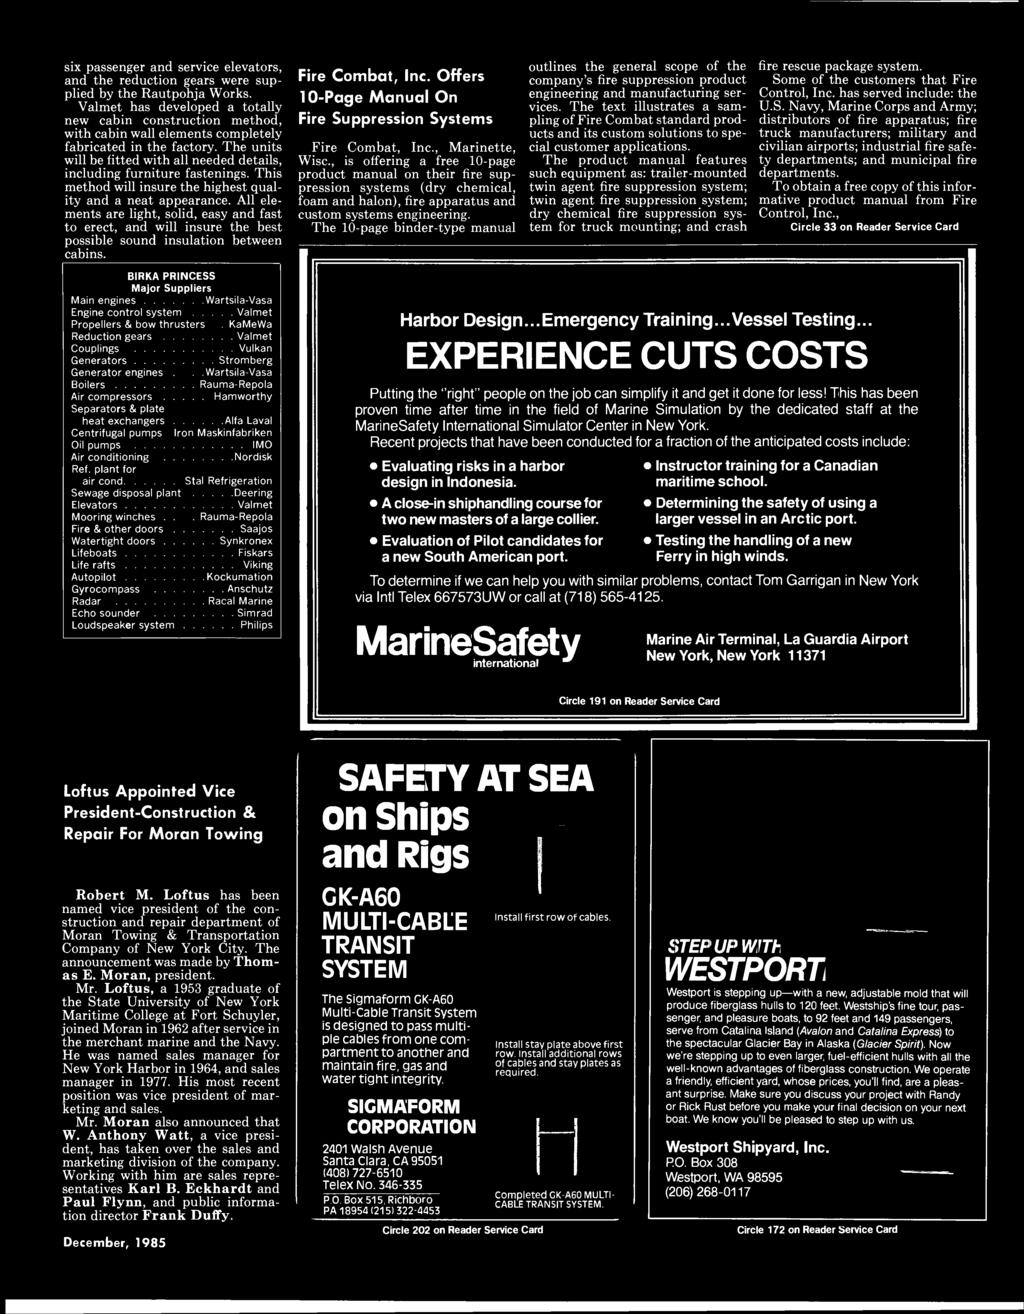 Maritime Reporter Engineering News Fflllbble Ib M1 M December 1985 104086101 Fincor Circuit Board Repair Six Passenger And Service Elevators The Reduction Gears Were Supplied By Rautpohja Works